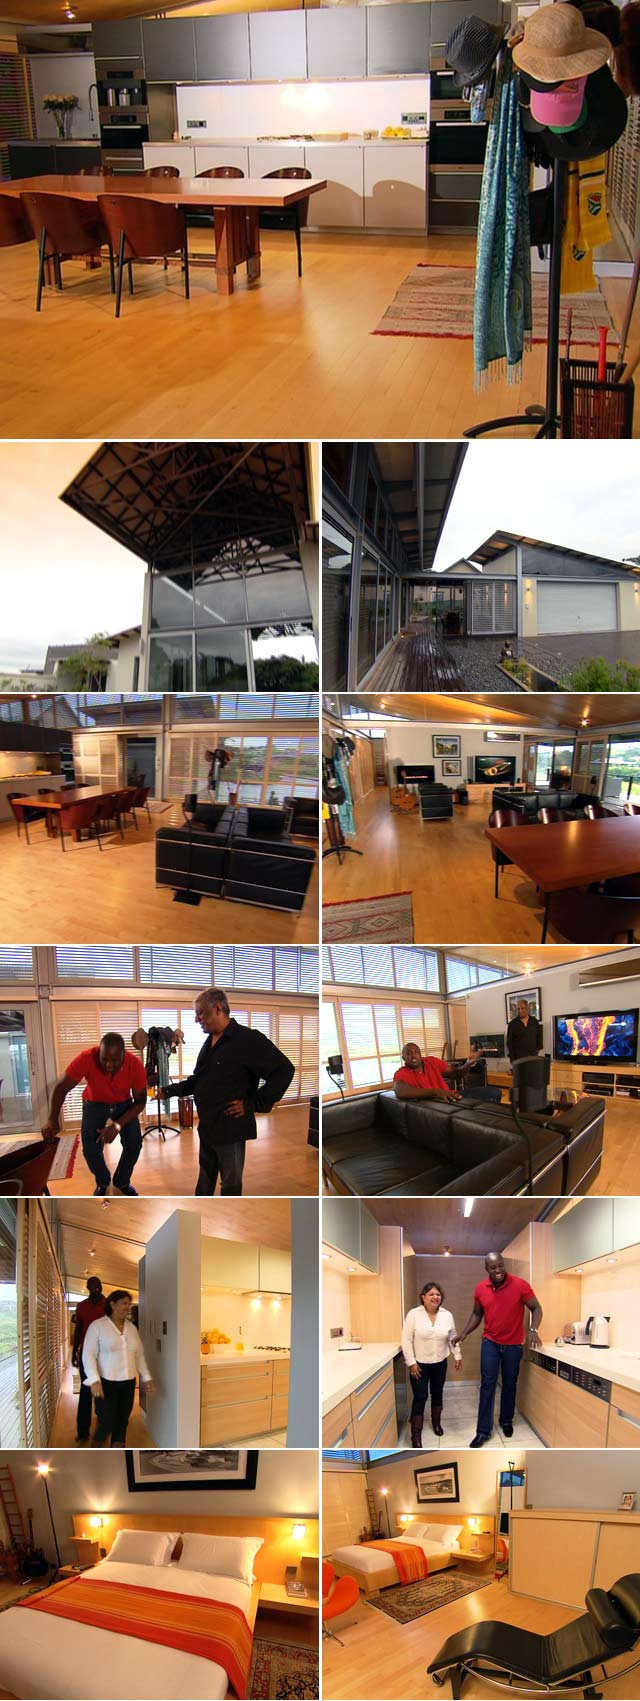 Top Billing features an Eco Friendly home in Durban